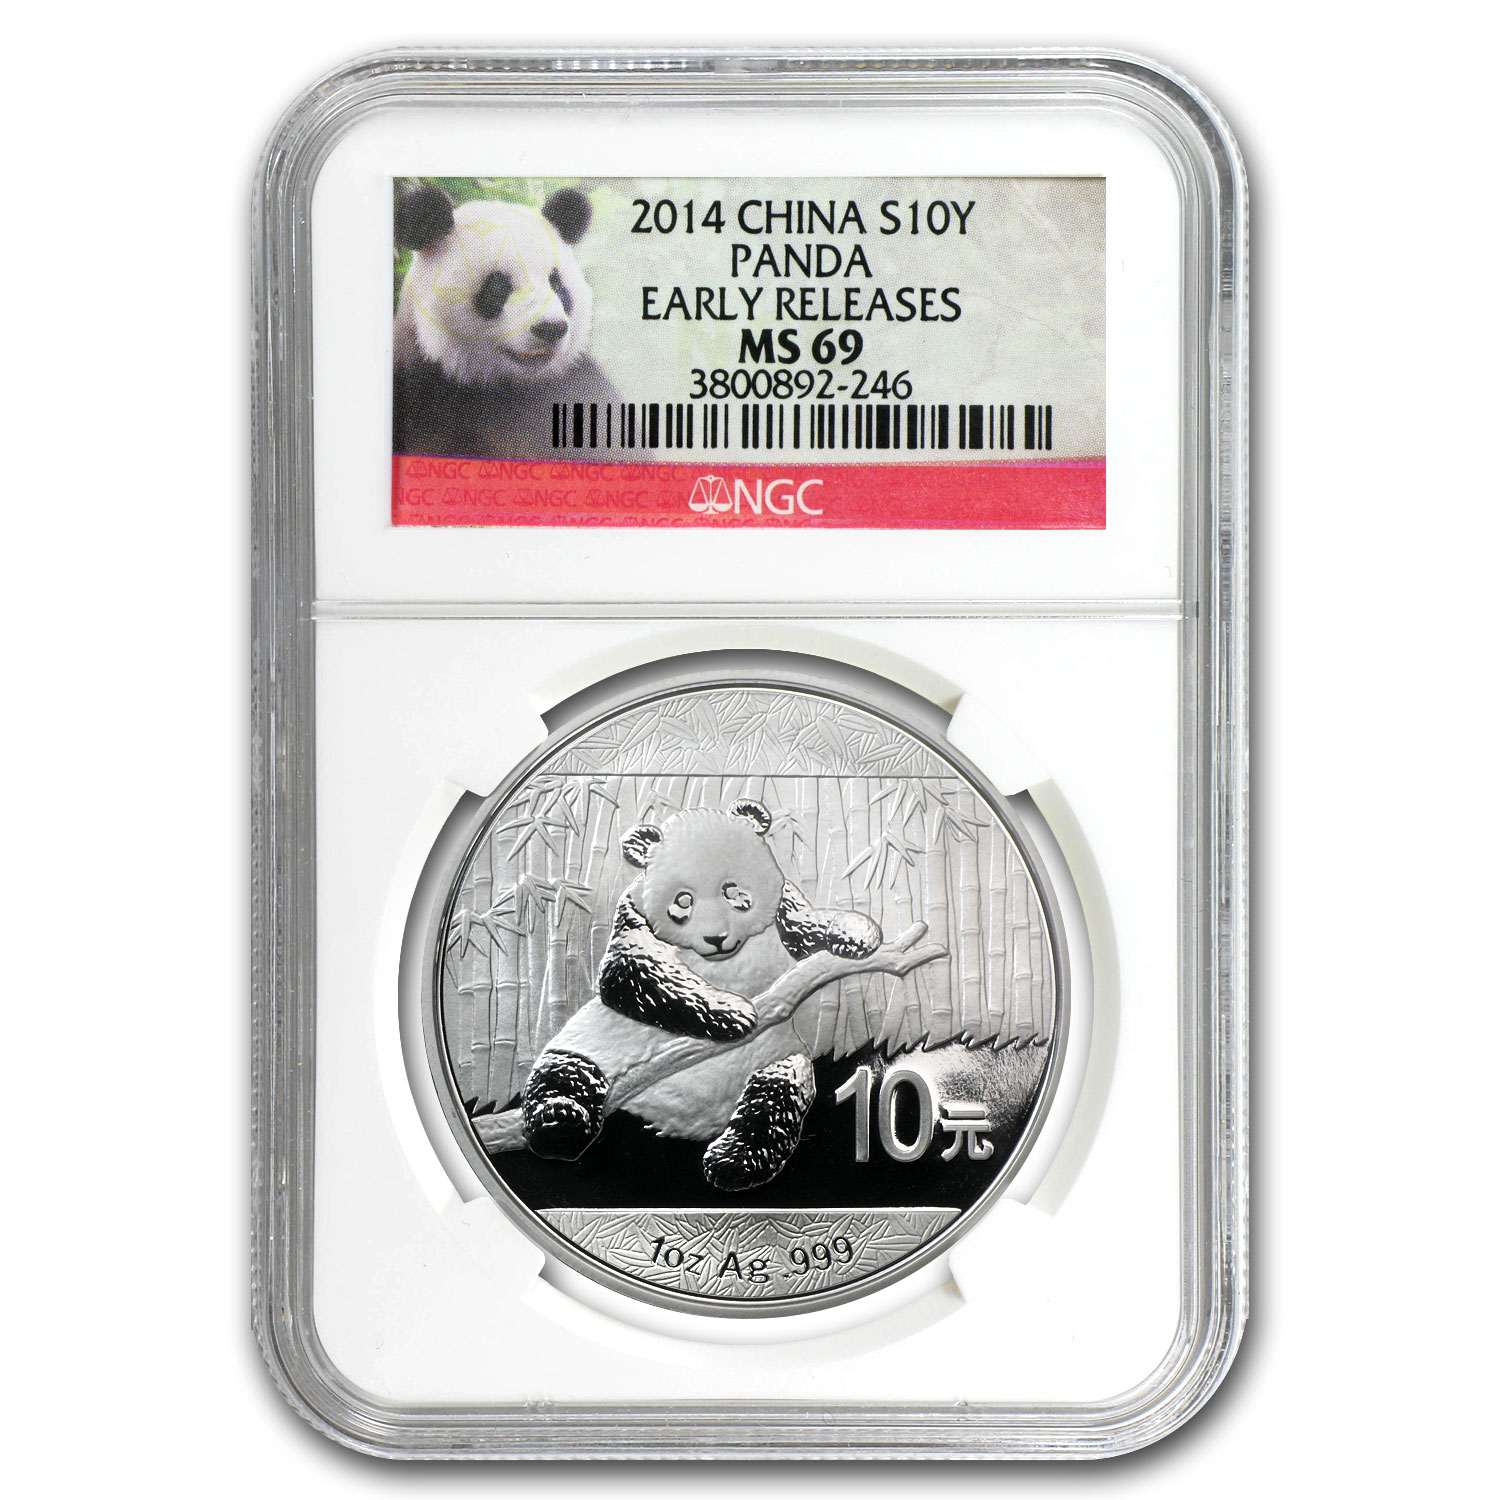 2014 China 1 oz Silver Panda MS-69 NGC (Early Releases)